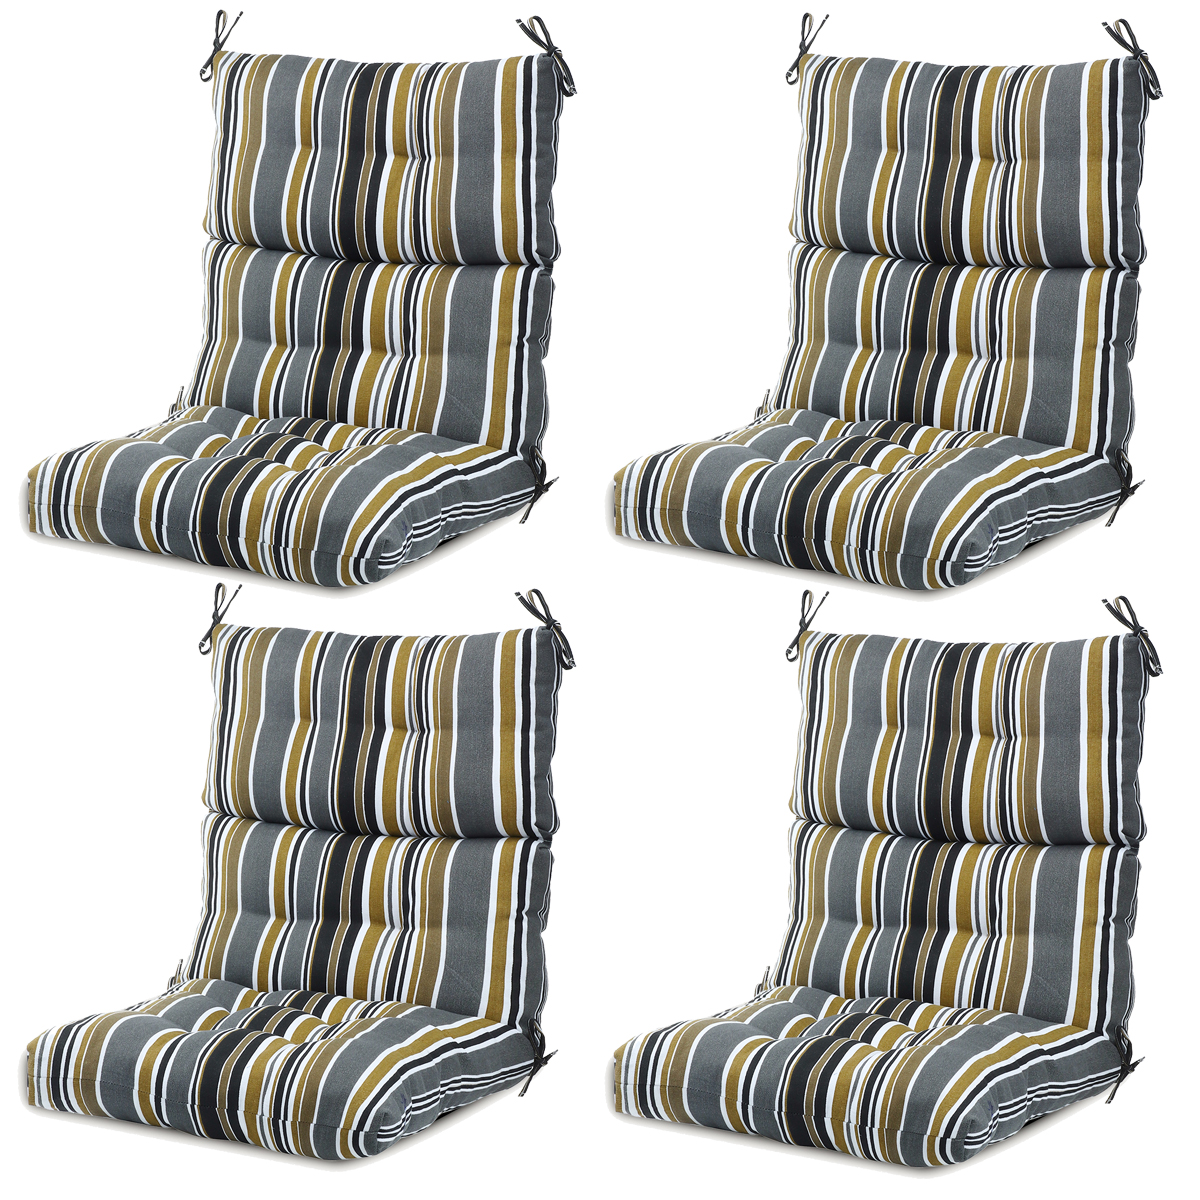 romhouse set of 4 solid high rebound foam chair cushion for outdoor patio garden home 44x21 inches